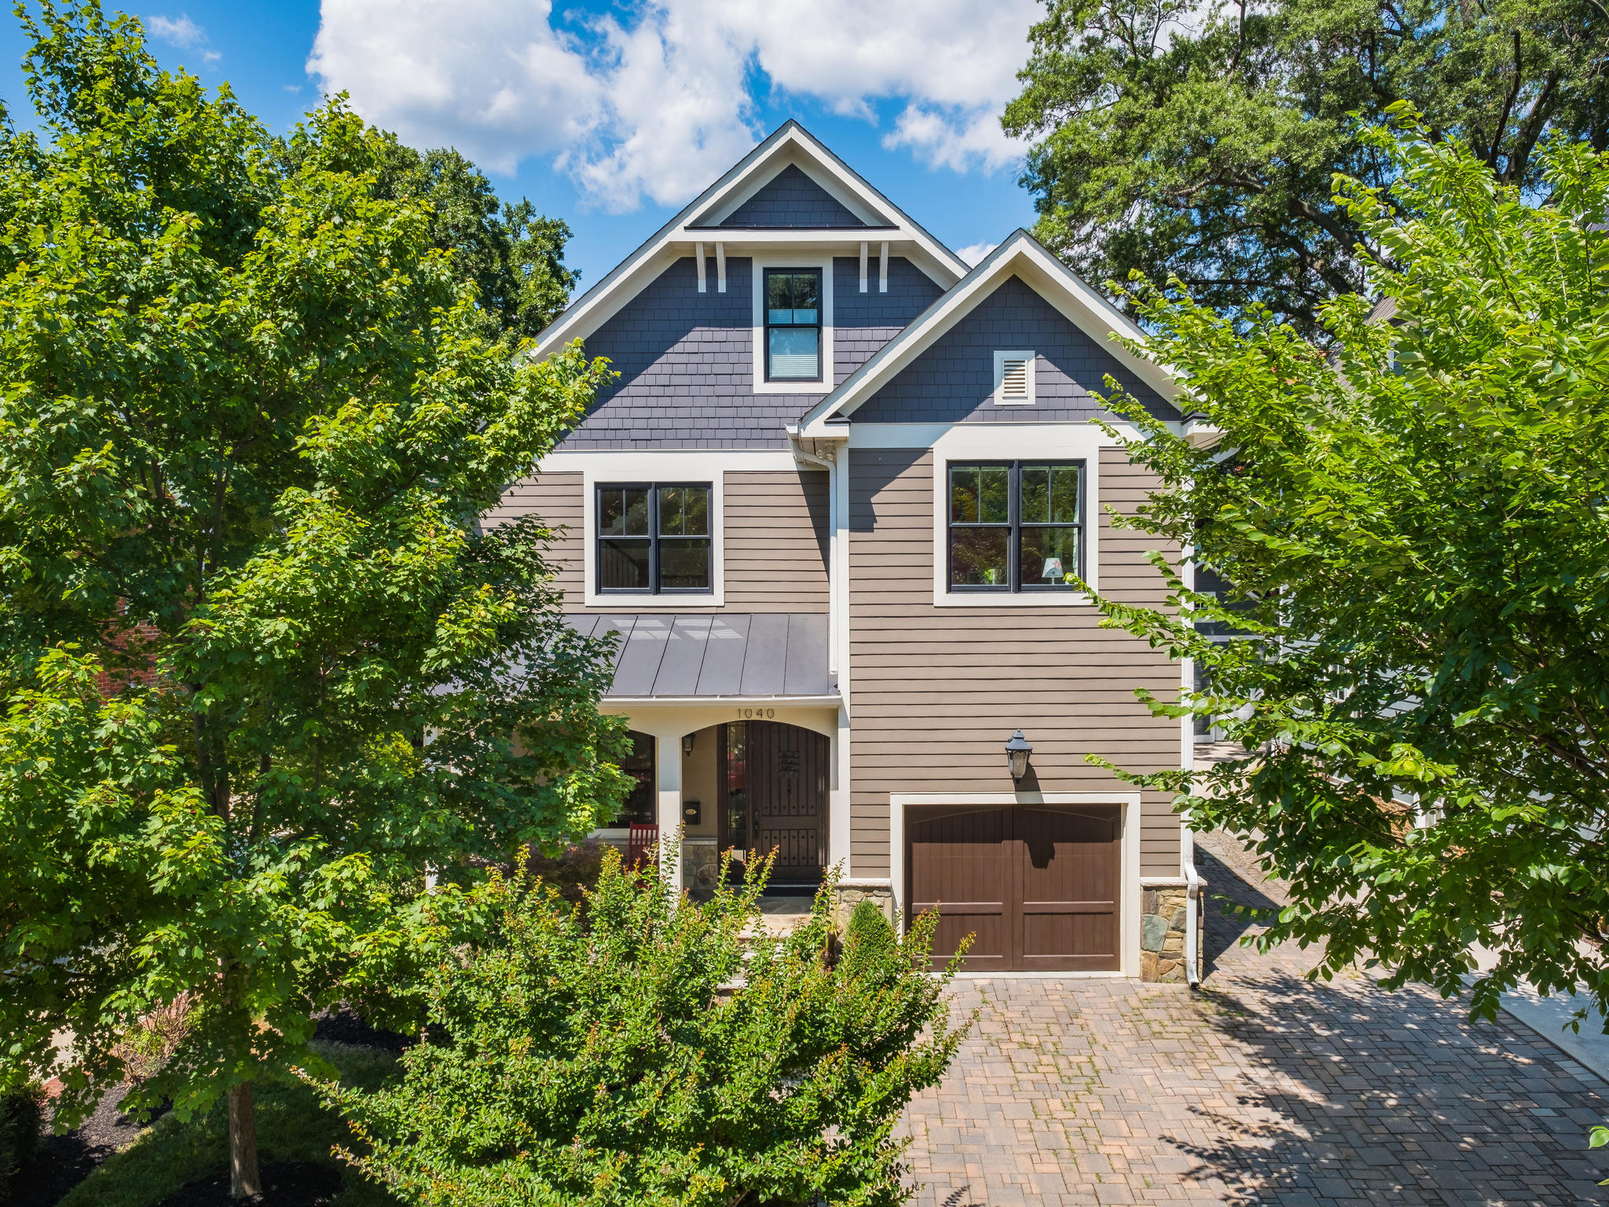 Single Family Home for Sale at Handsome Custom-built in Heart of Clarendon 1040 Edgewood St N Arlington, Virginia 22201 United States